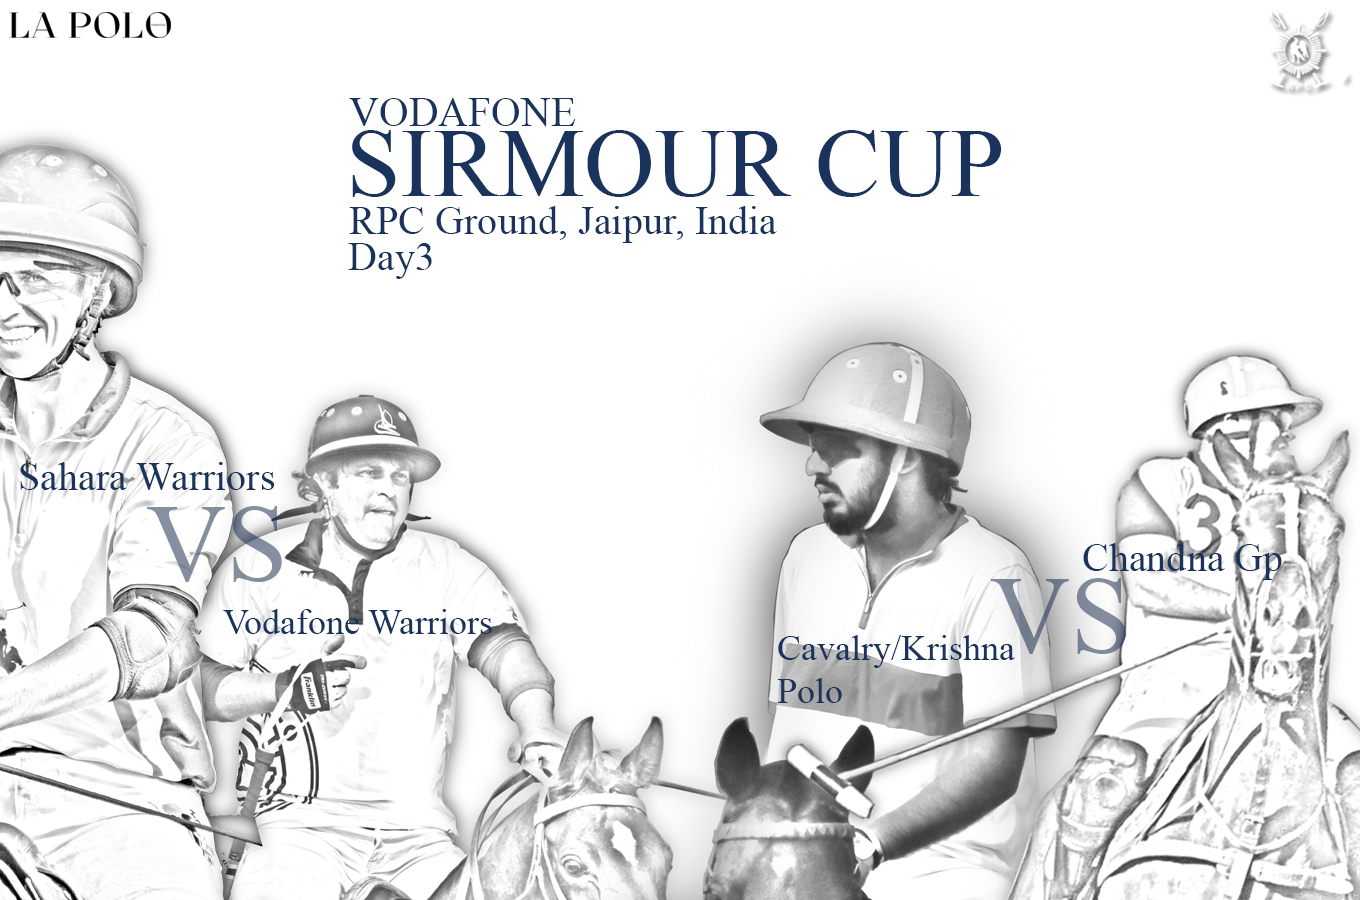 Day 3 Of Vodafone Sirmour Cup